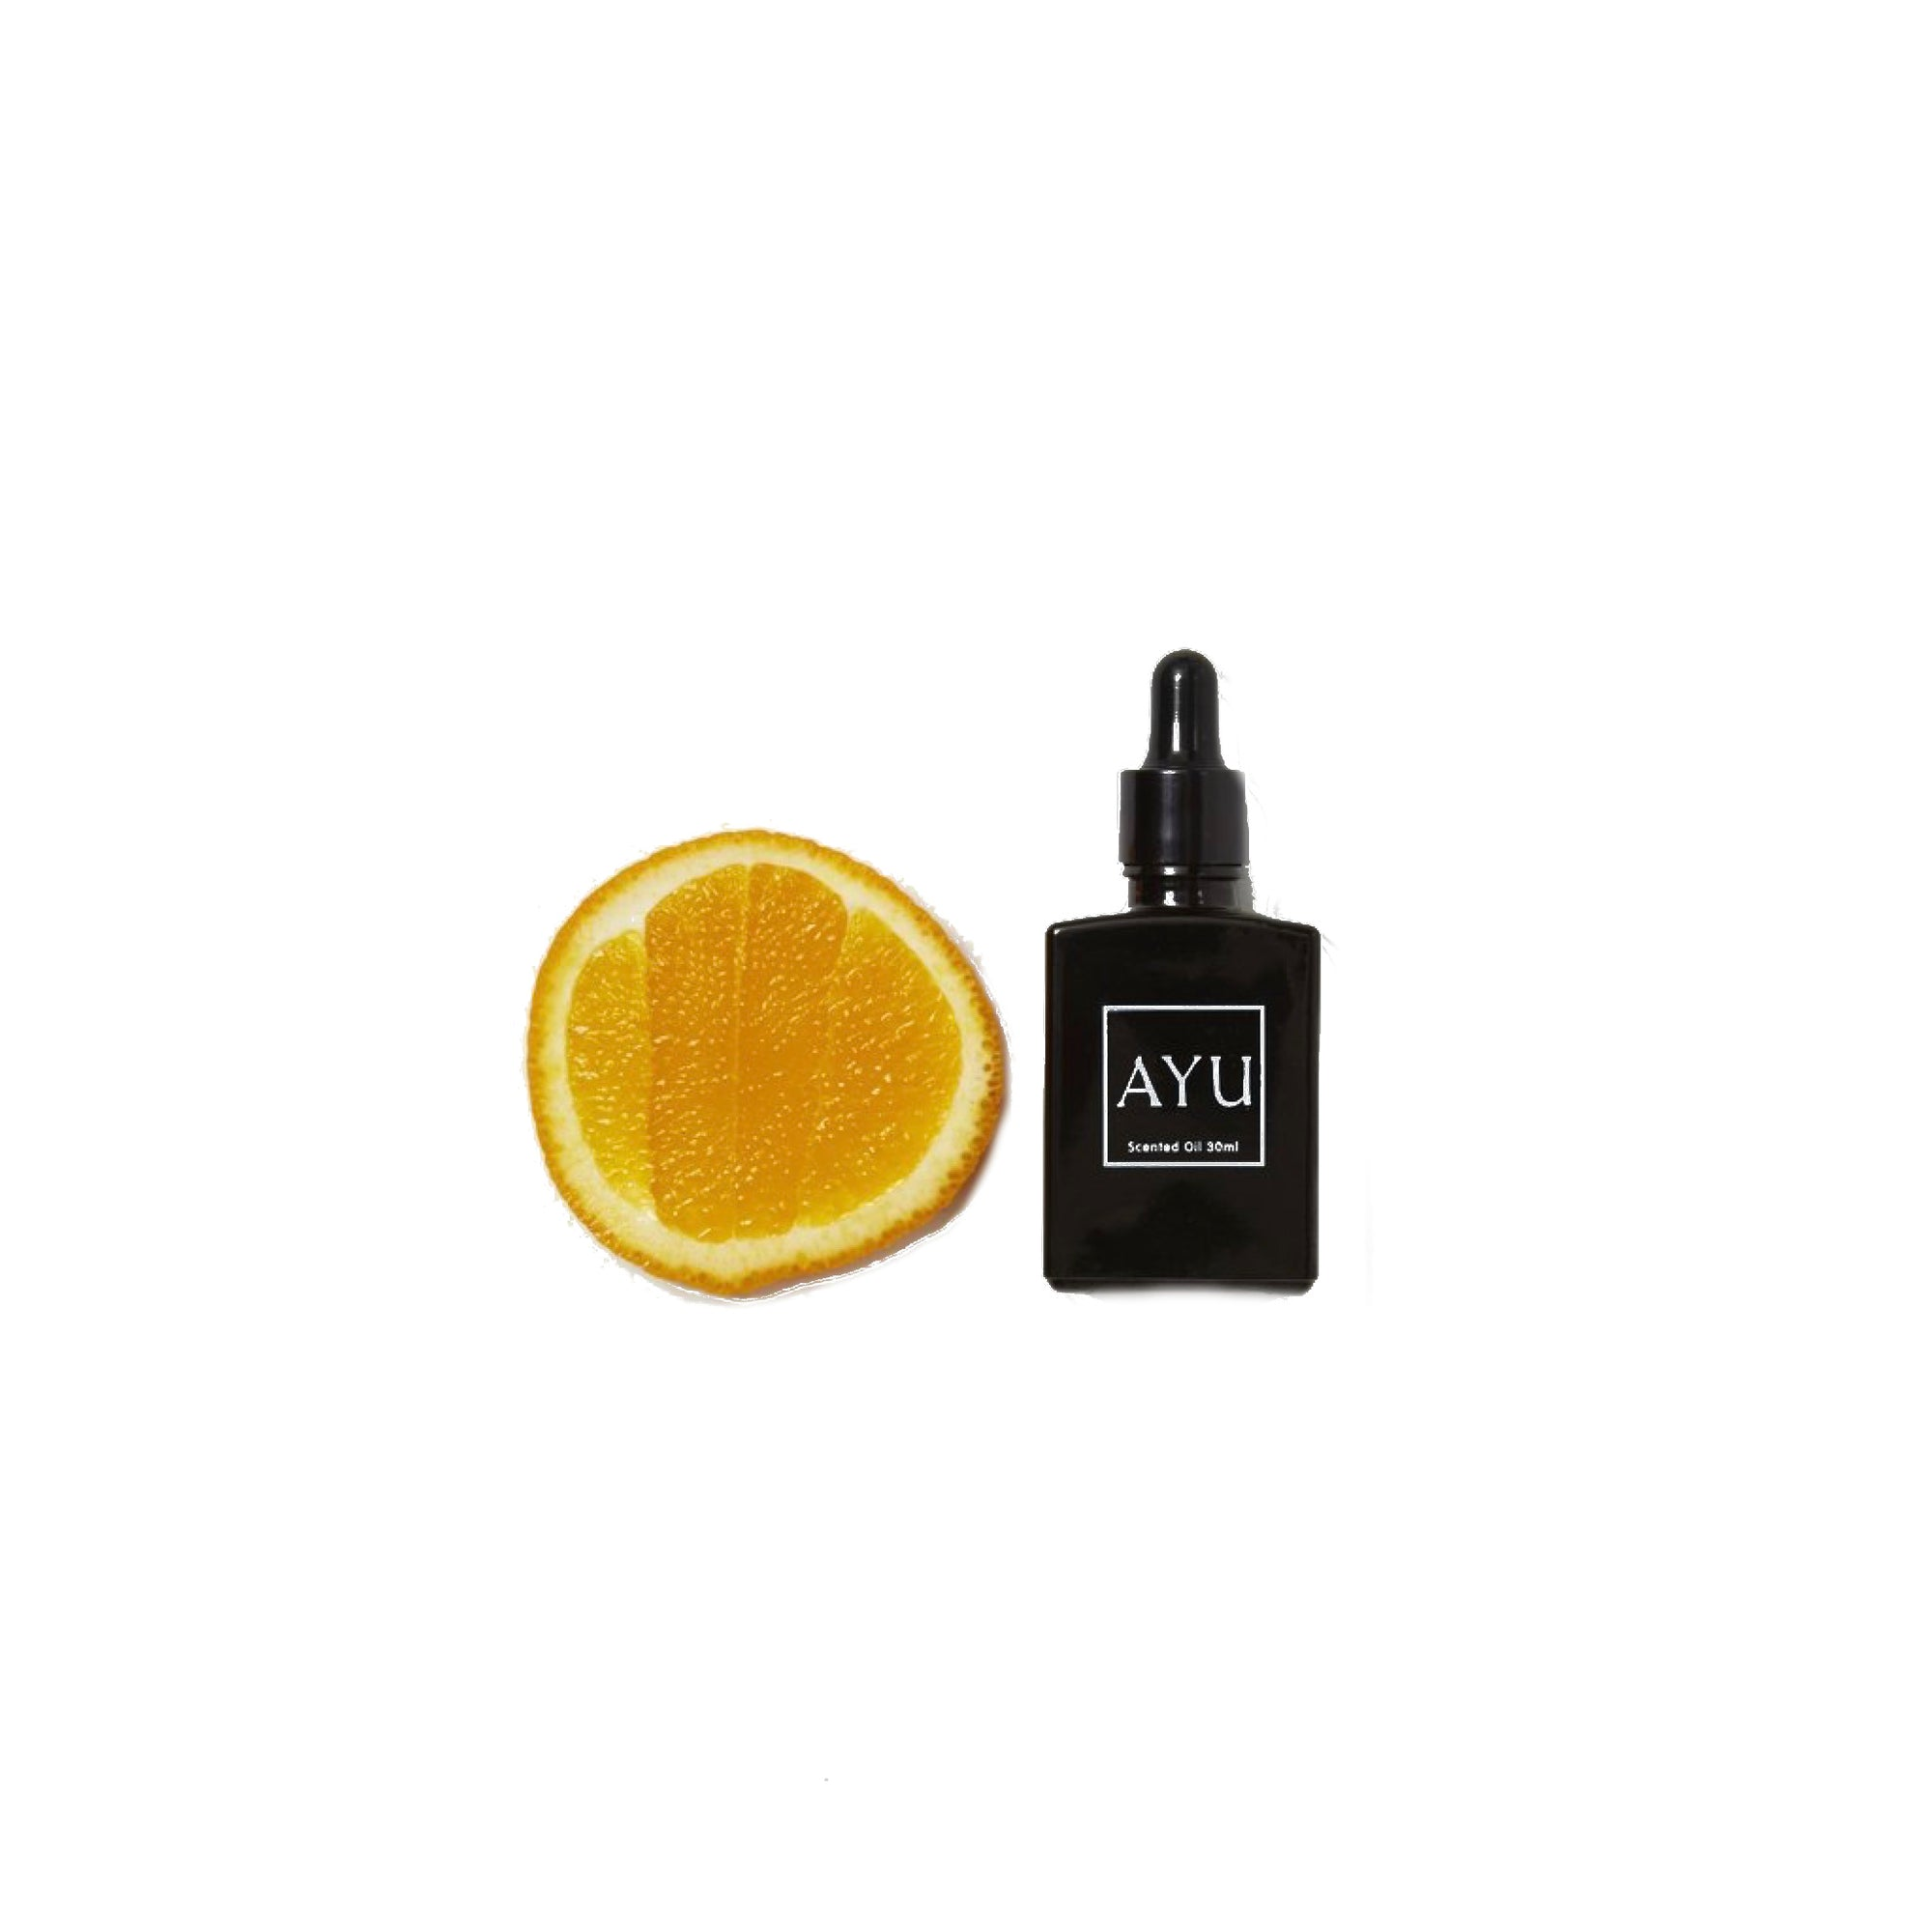 AYU Scented Oil- RUMI